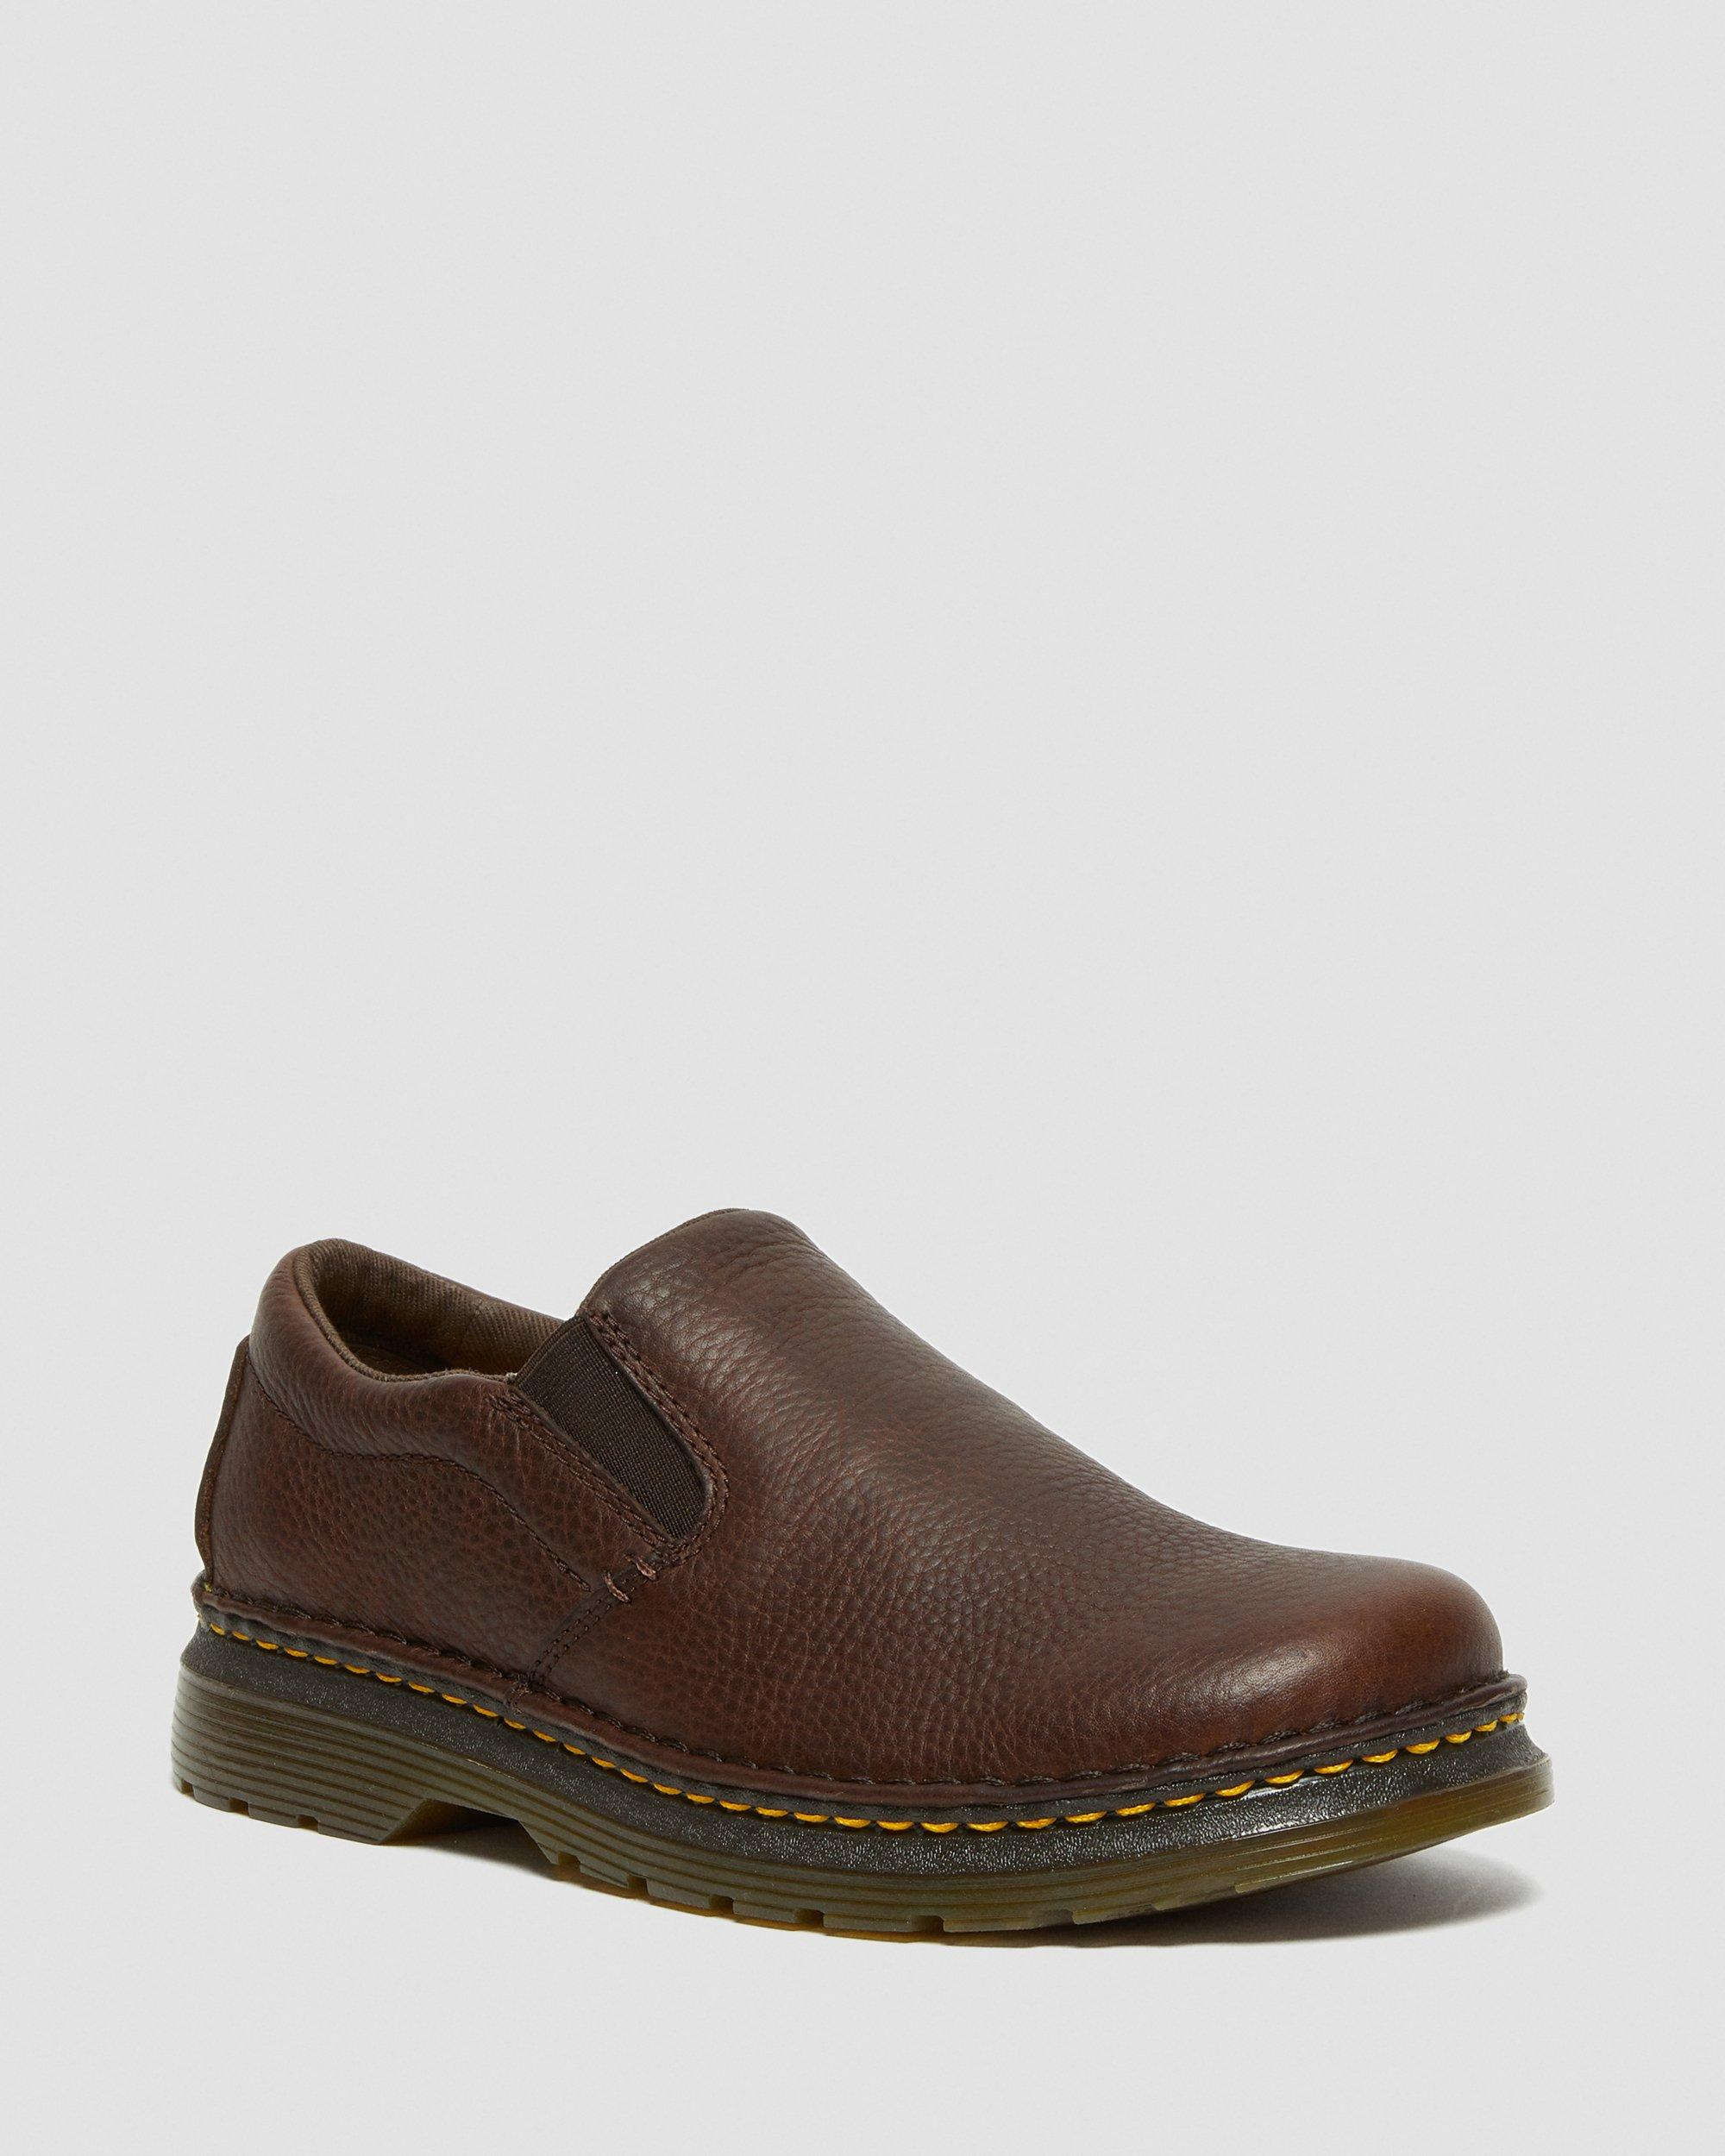 GRIZZLY LEATHER SLIP ON SHOES | Dr. Martens